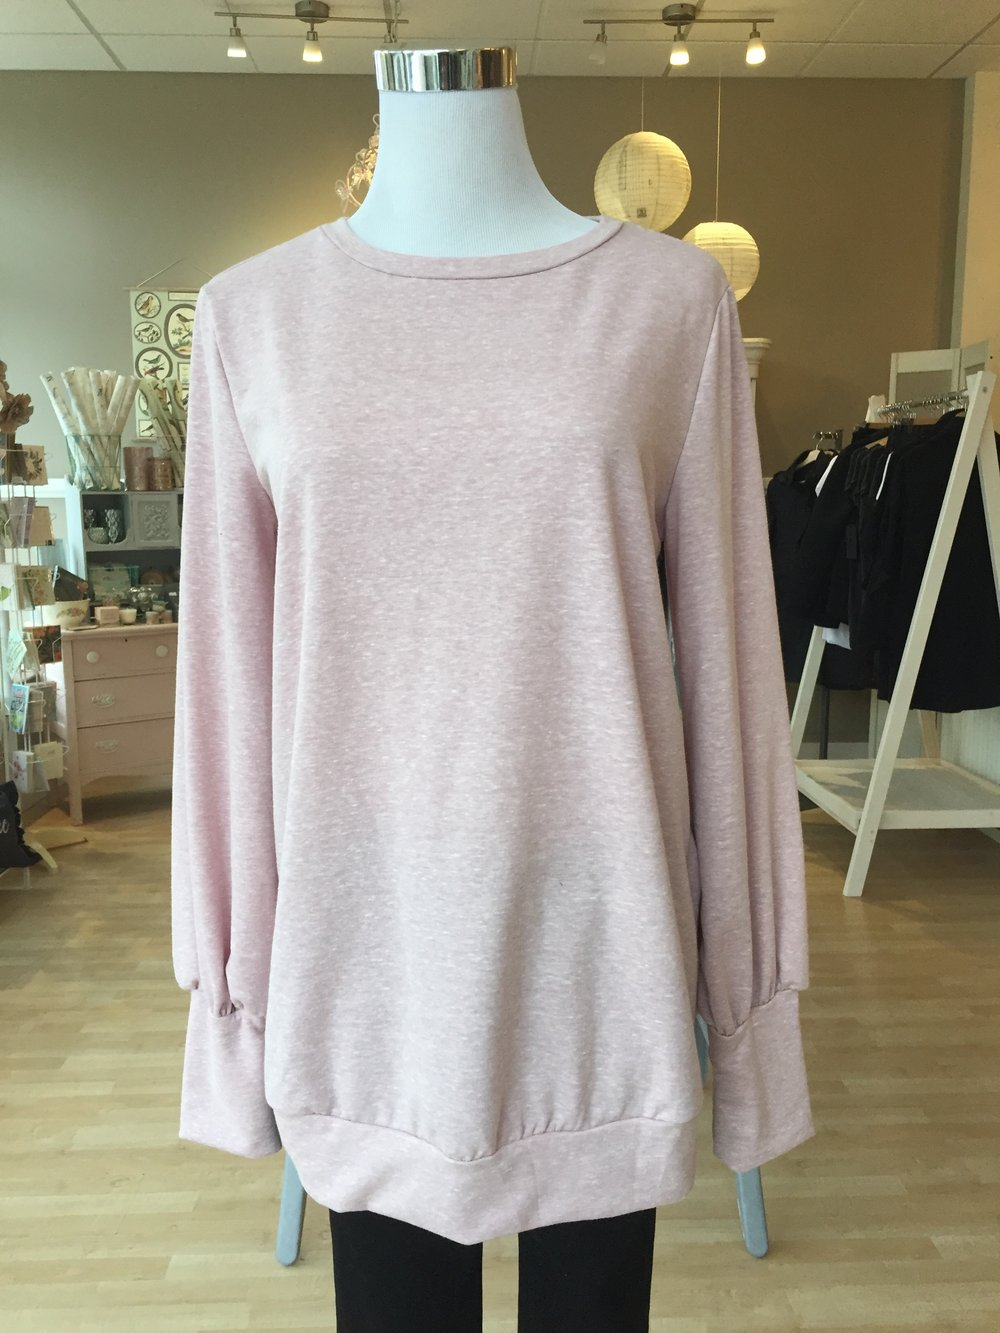 Top w/ Cute Sleeves $38 (pink, charcoal)